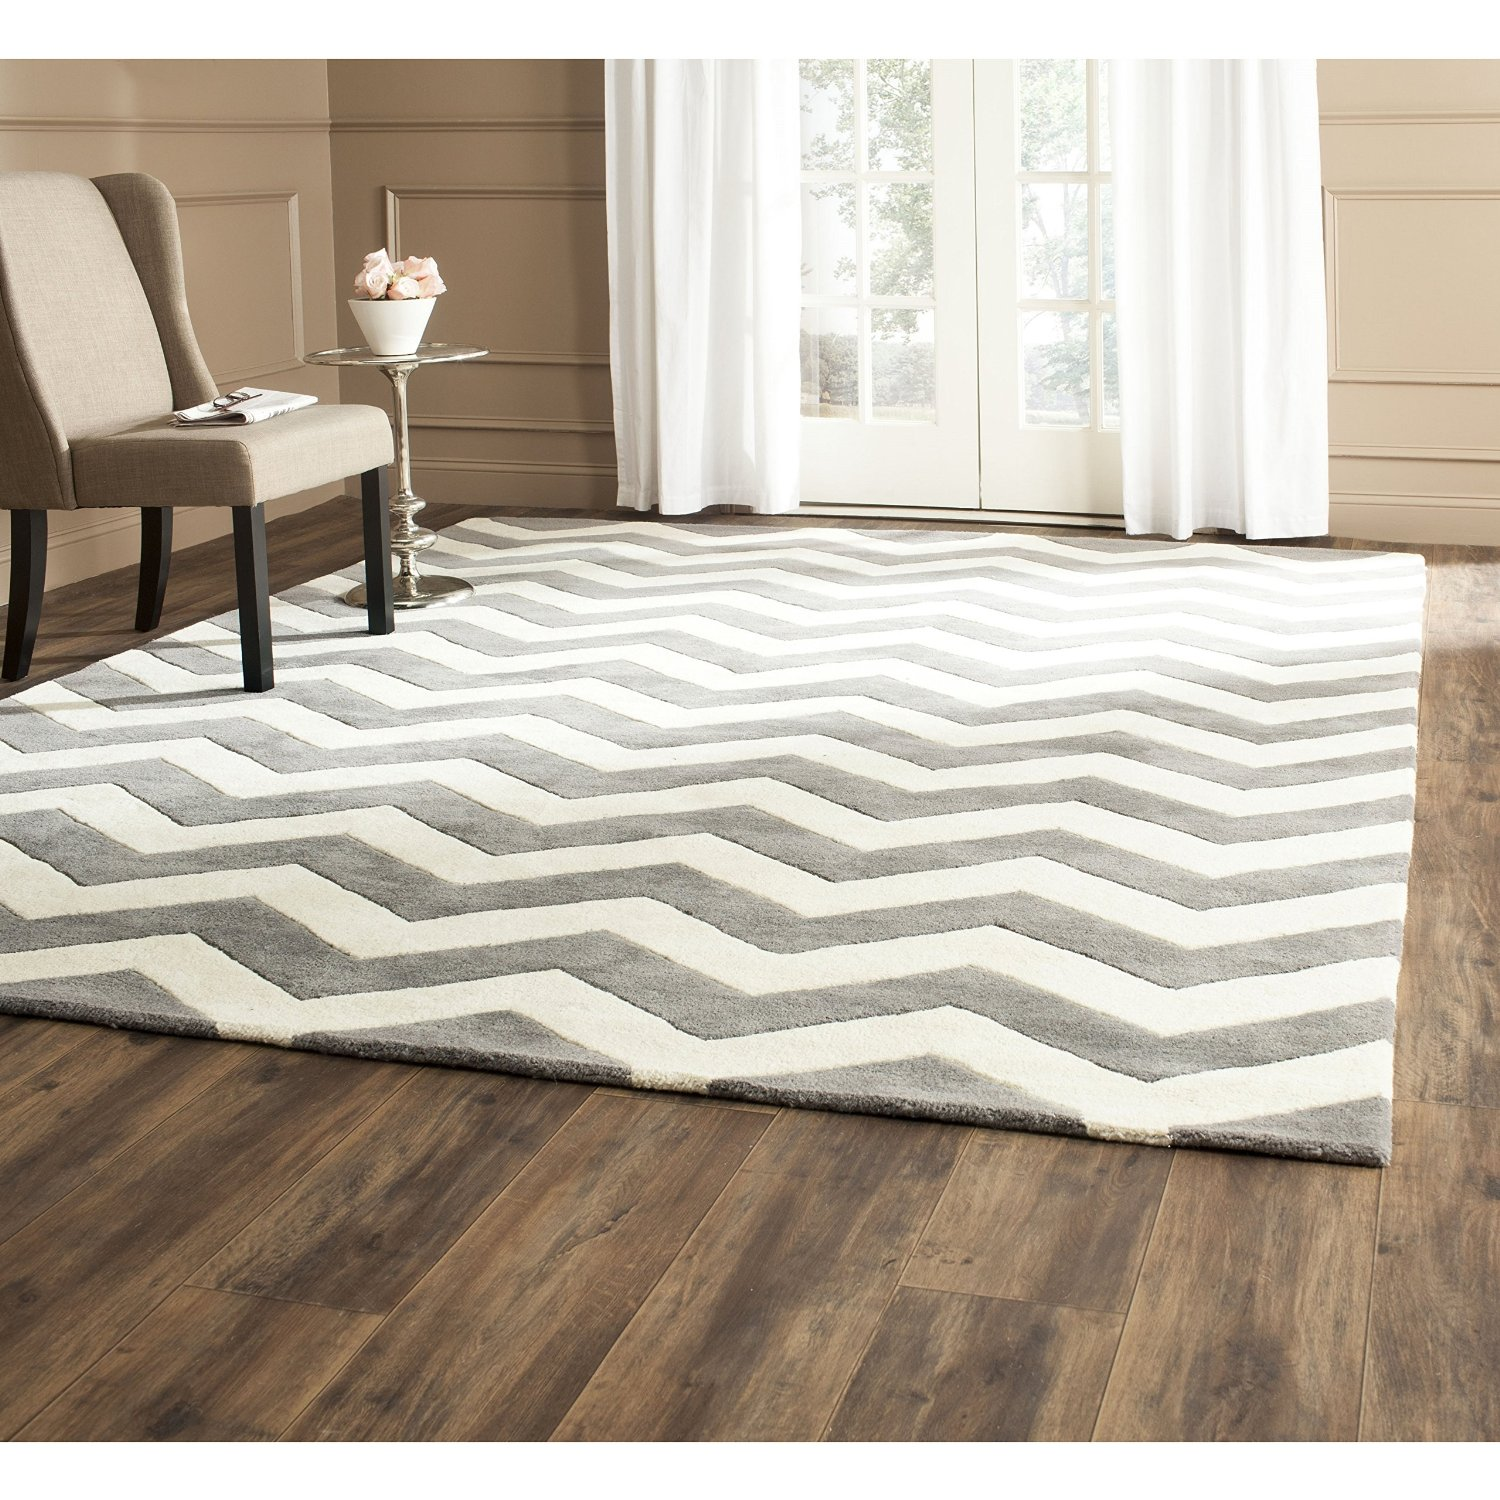 Wool Rugs Made In Usa Home Decor